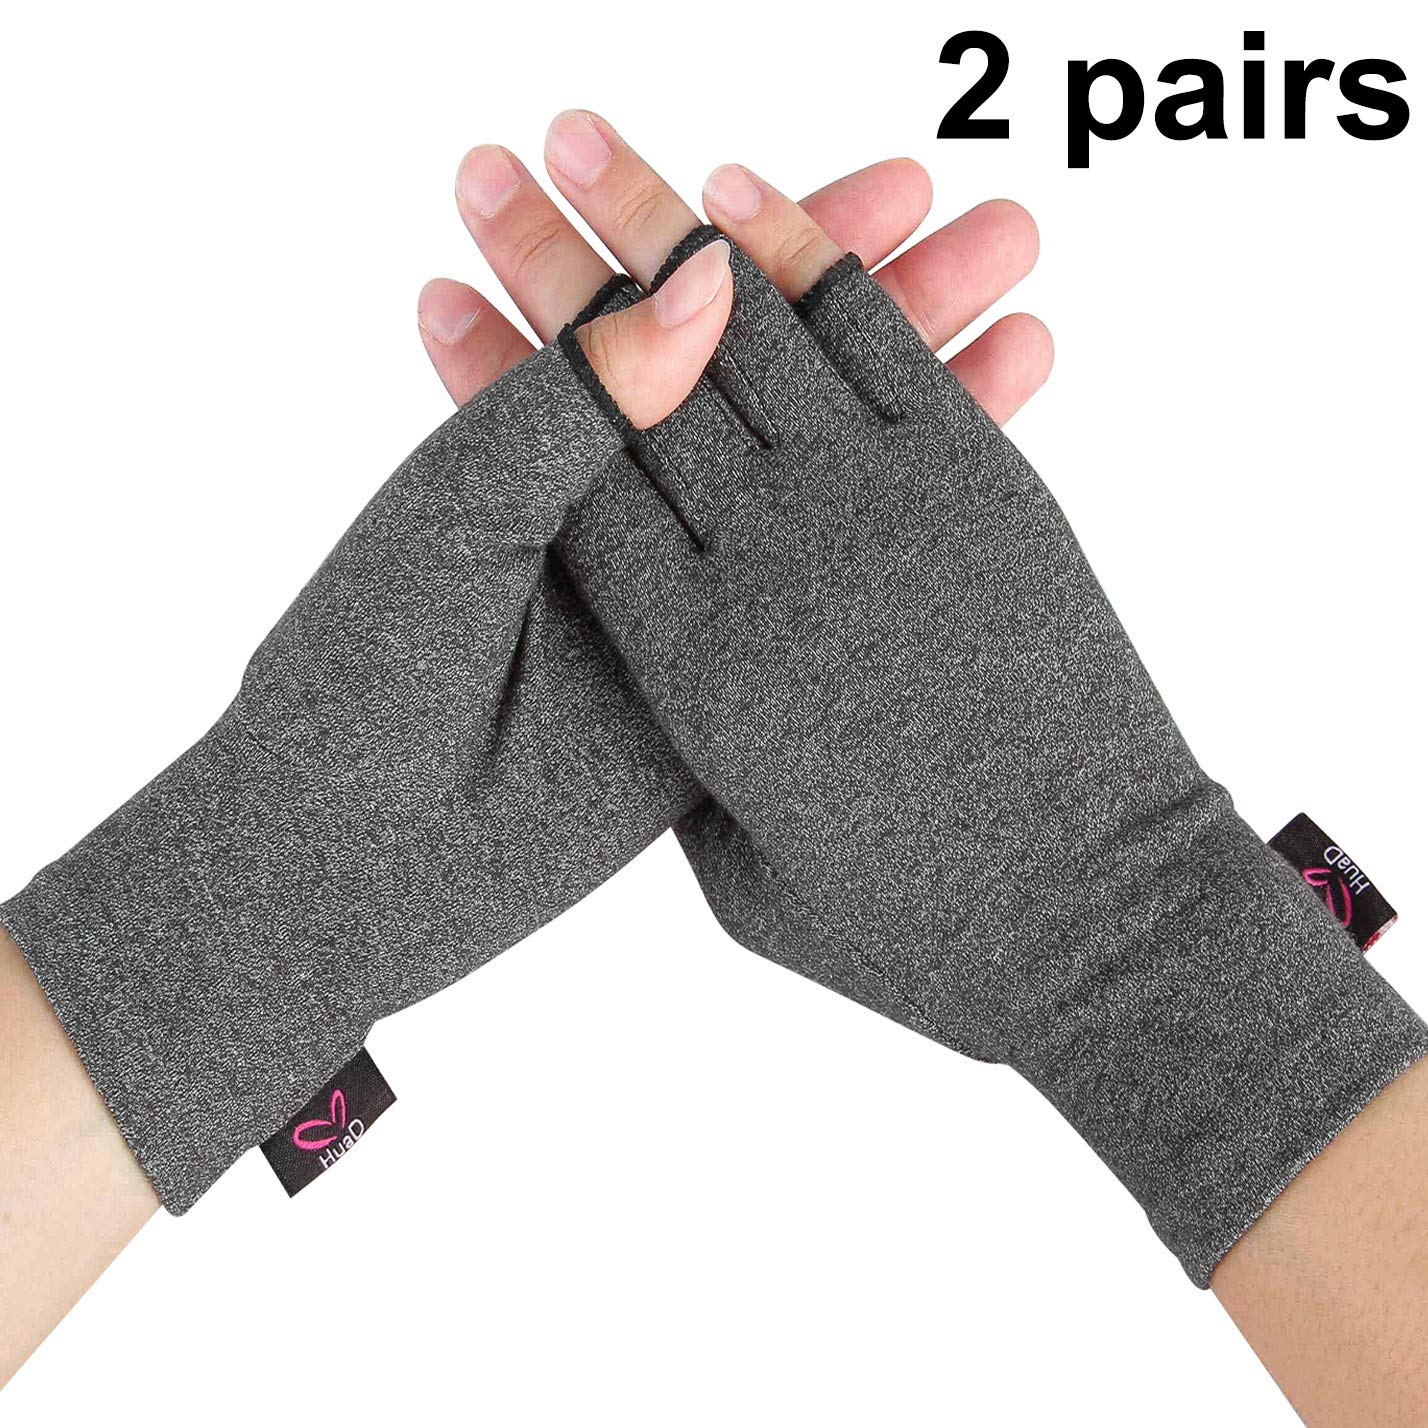 2 Pairs - Compression Arthritis Gloves for Women and Men, Fingerless Design to Relieve Pain from Rheumatoid Arthritis and Osteoarthritis (Grey, Medium)